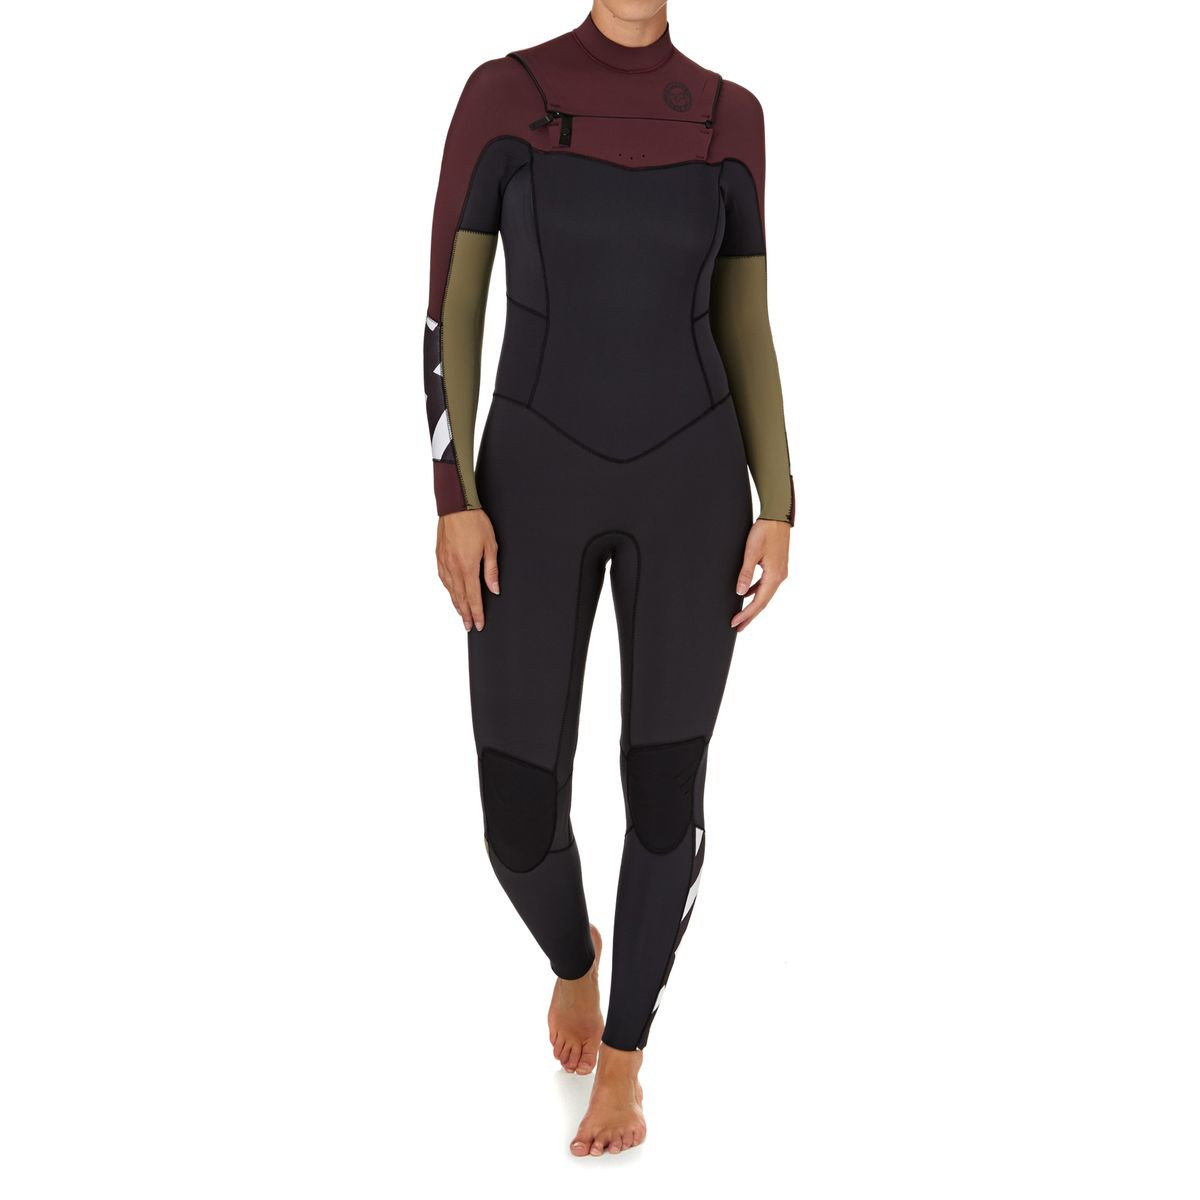 9ab9f2b188 Billabong Womens Surf Capsule Salty Dayz 5 4mm 2018 Chest Zip Wetsuit –  Mulberry